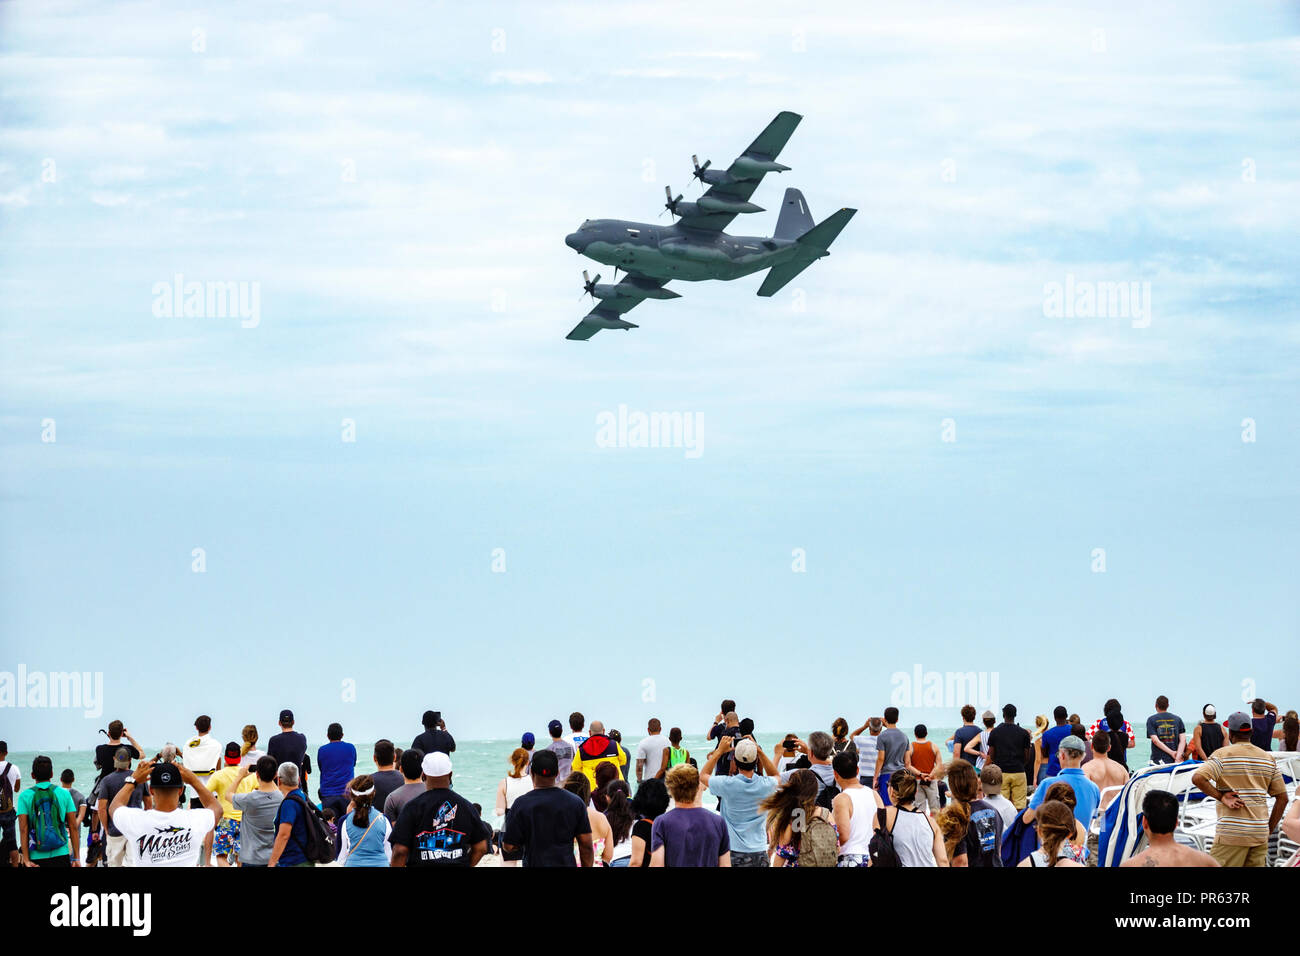 Miami Beach Florida National Salute to America's Heroes Air & Sea Show Lockheed C-130 Hercules four-engine turboprop military transport aircraft audie - Stock Image